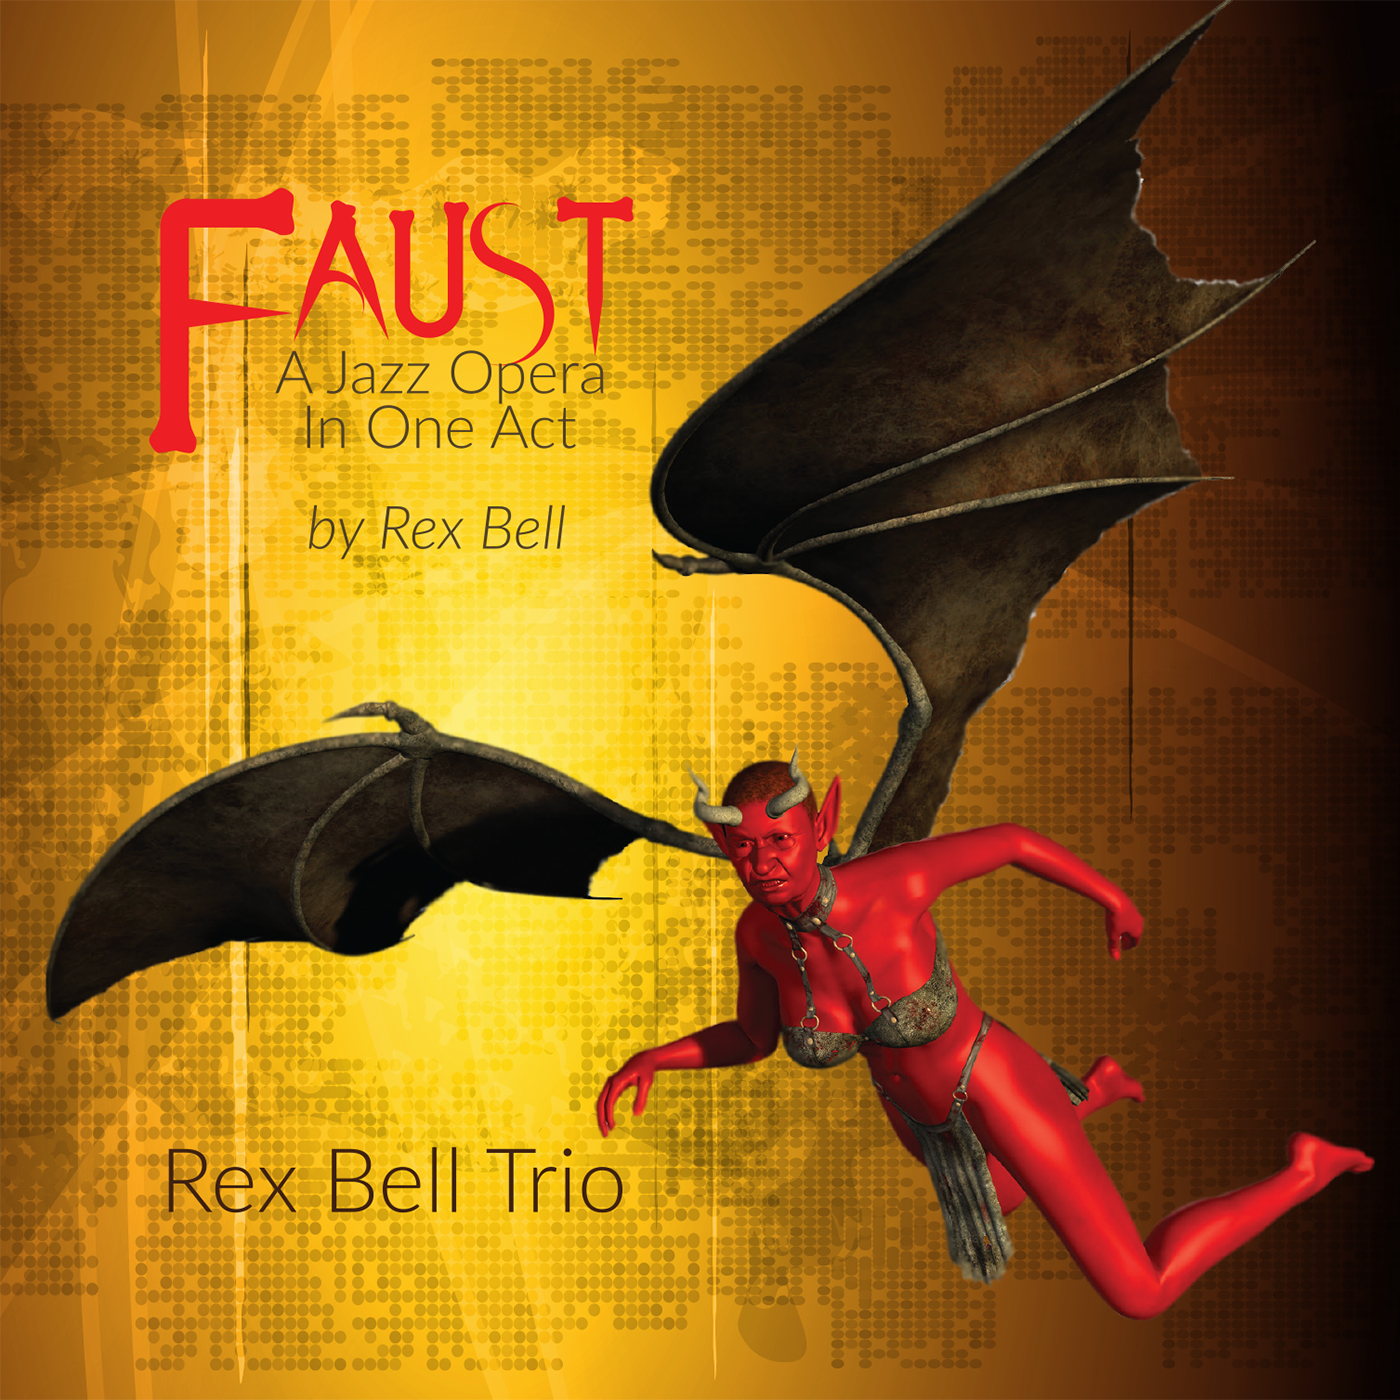 Rex-Bell-Trio-Faust-A-Jazz-Opera-Cover-CD-Baby